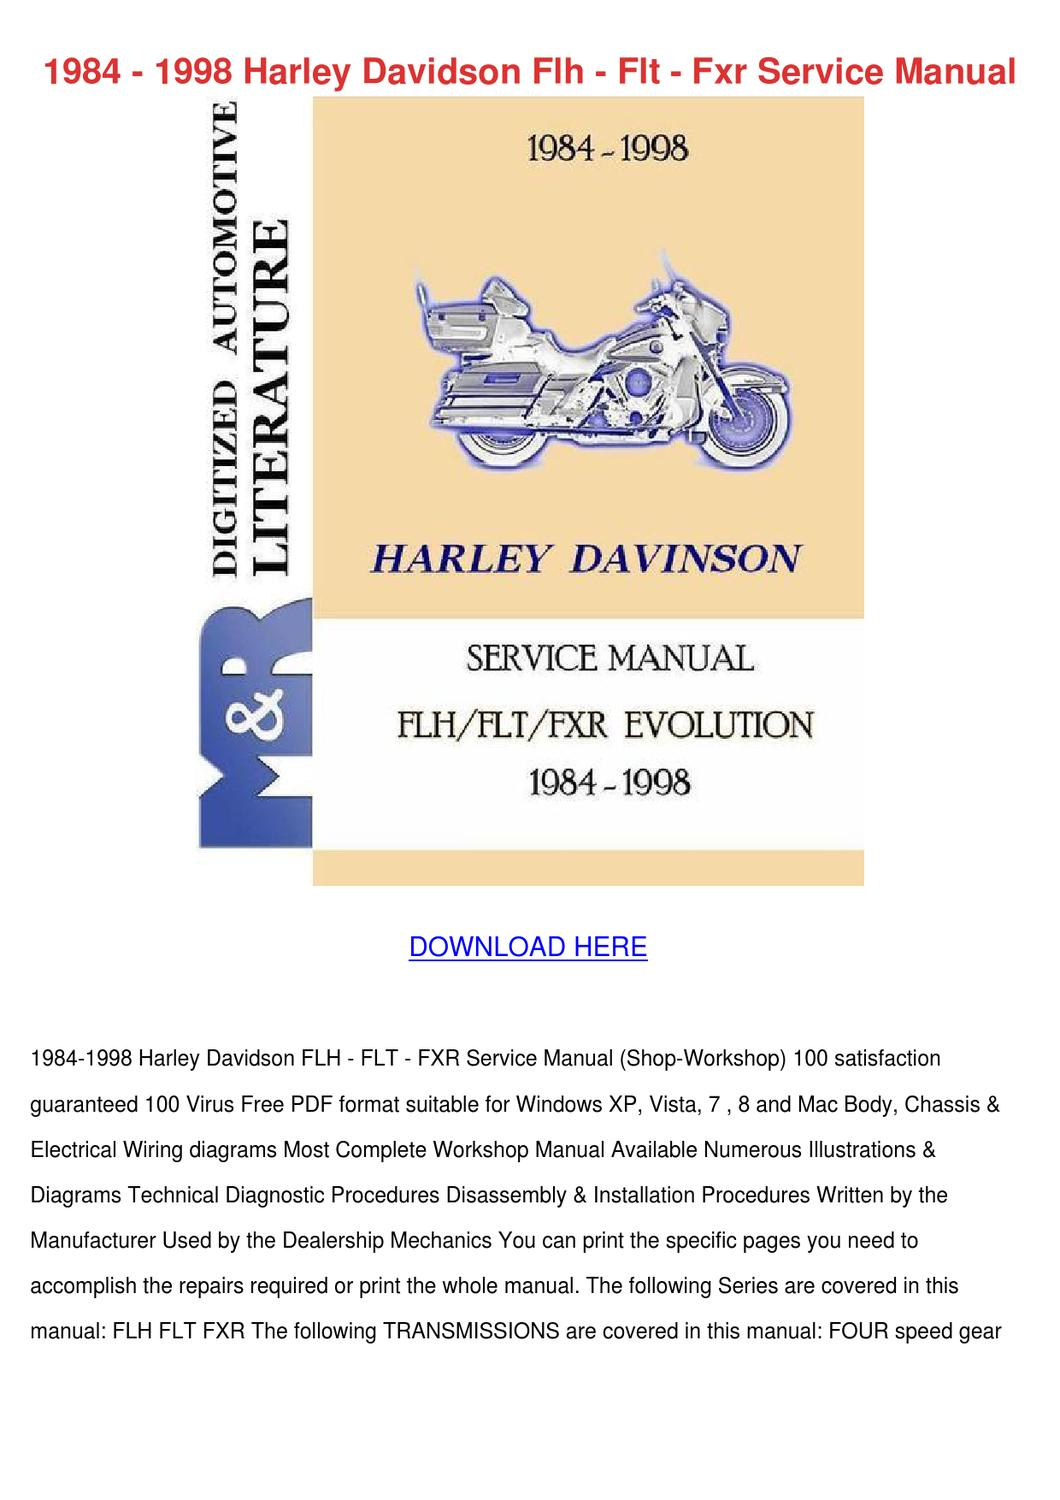 1996 Harley Sportster Wiring Diagram | Wiring Diagram on